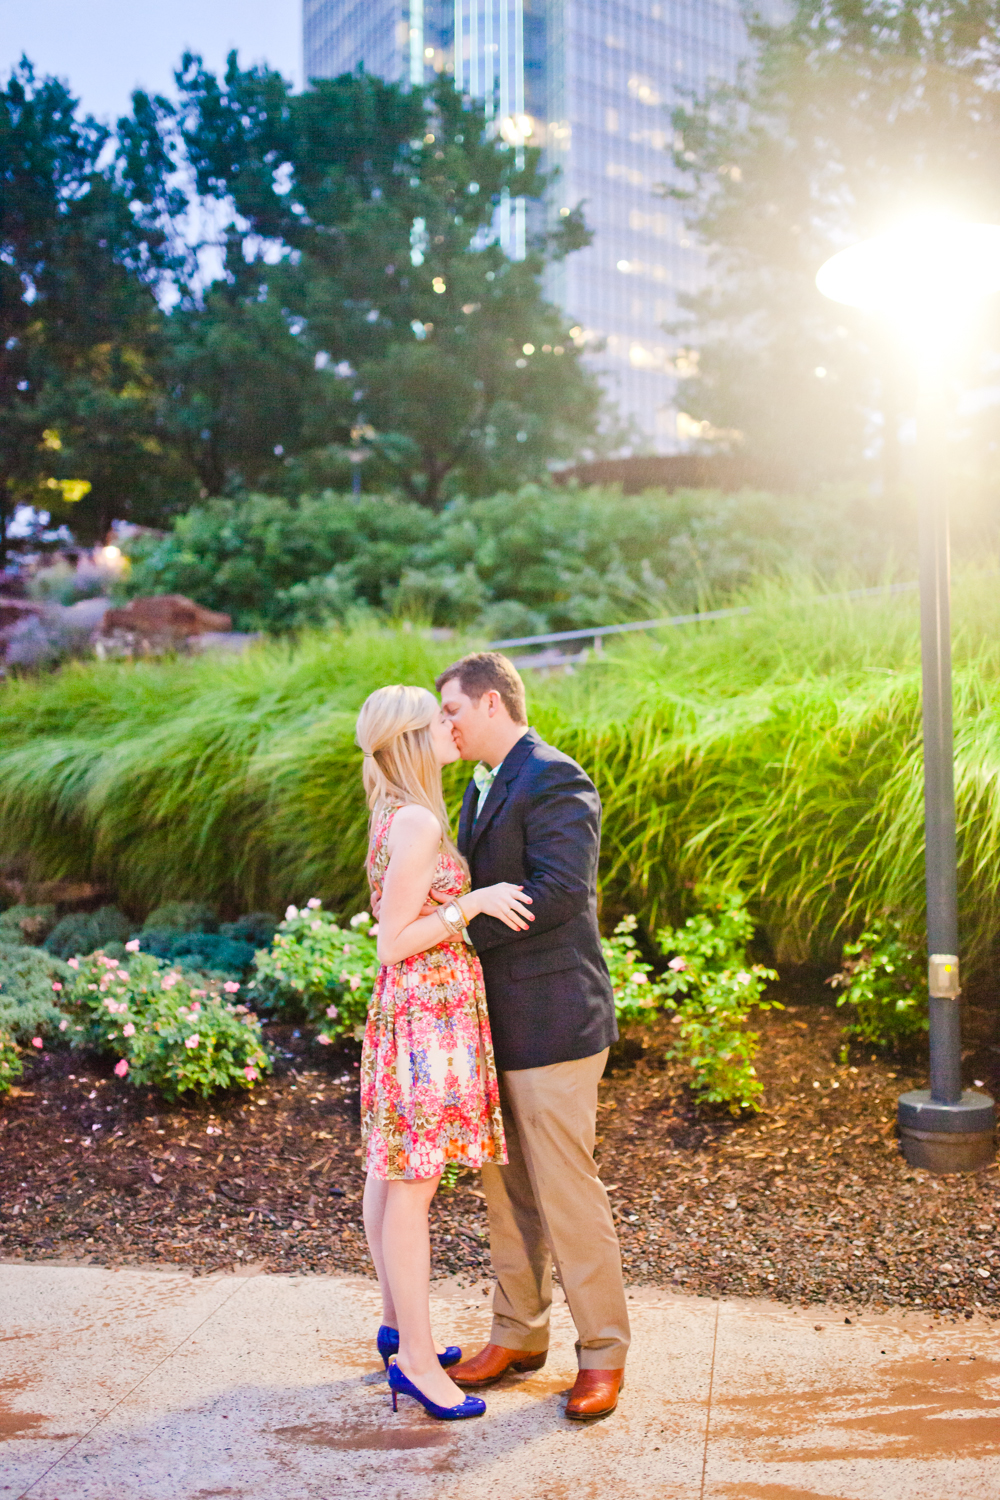 ... Okc Proposal Photographer, Oklahoma Proposal Photographer ...